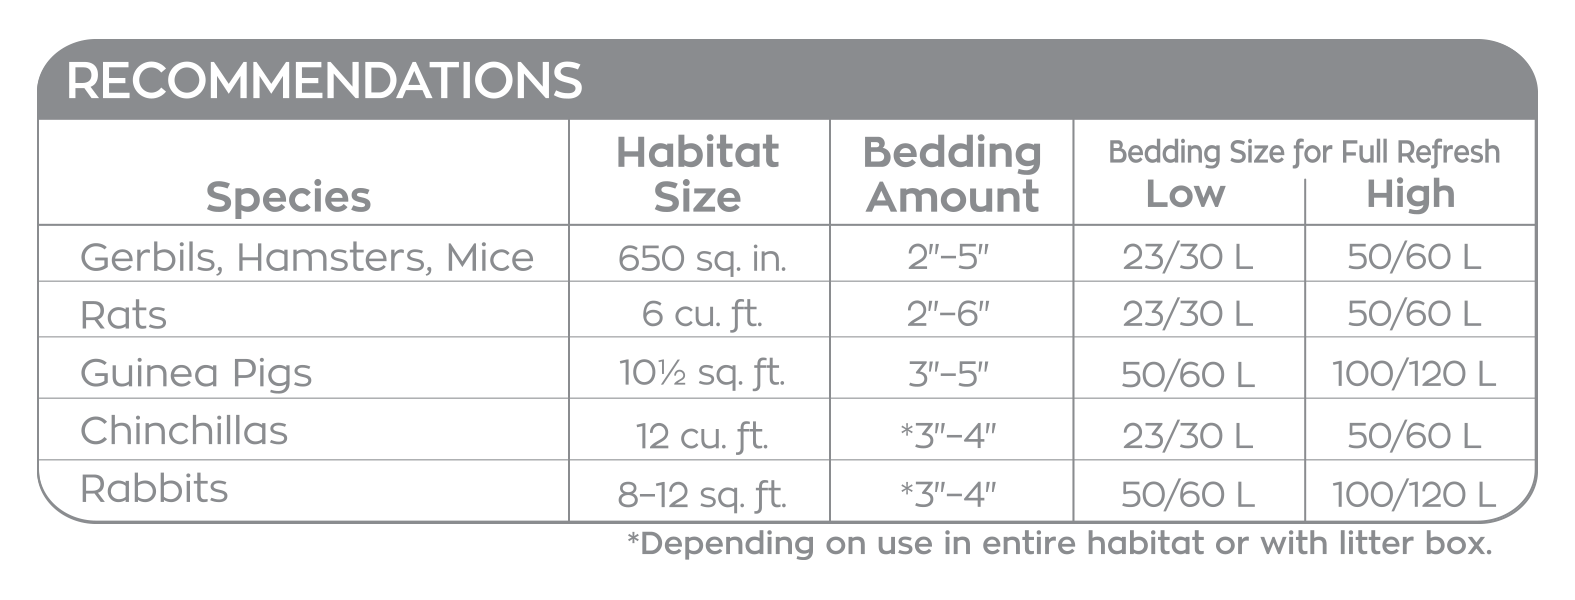 carefresh habitat recommendations and bedding